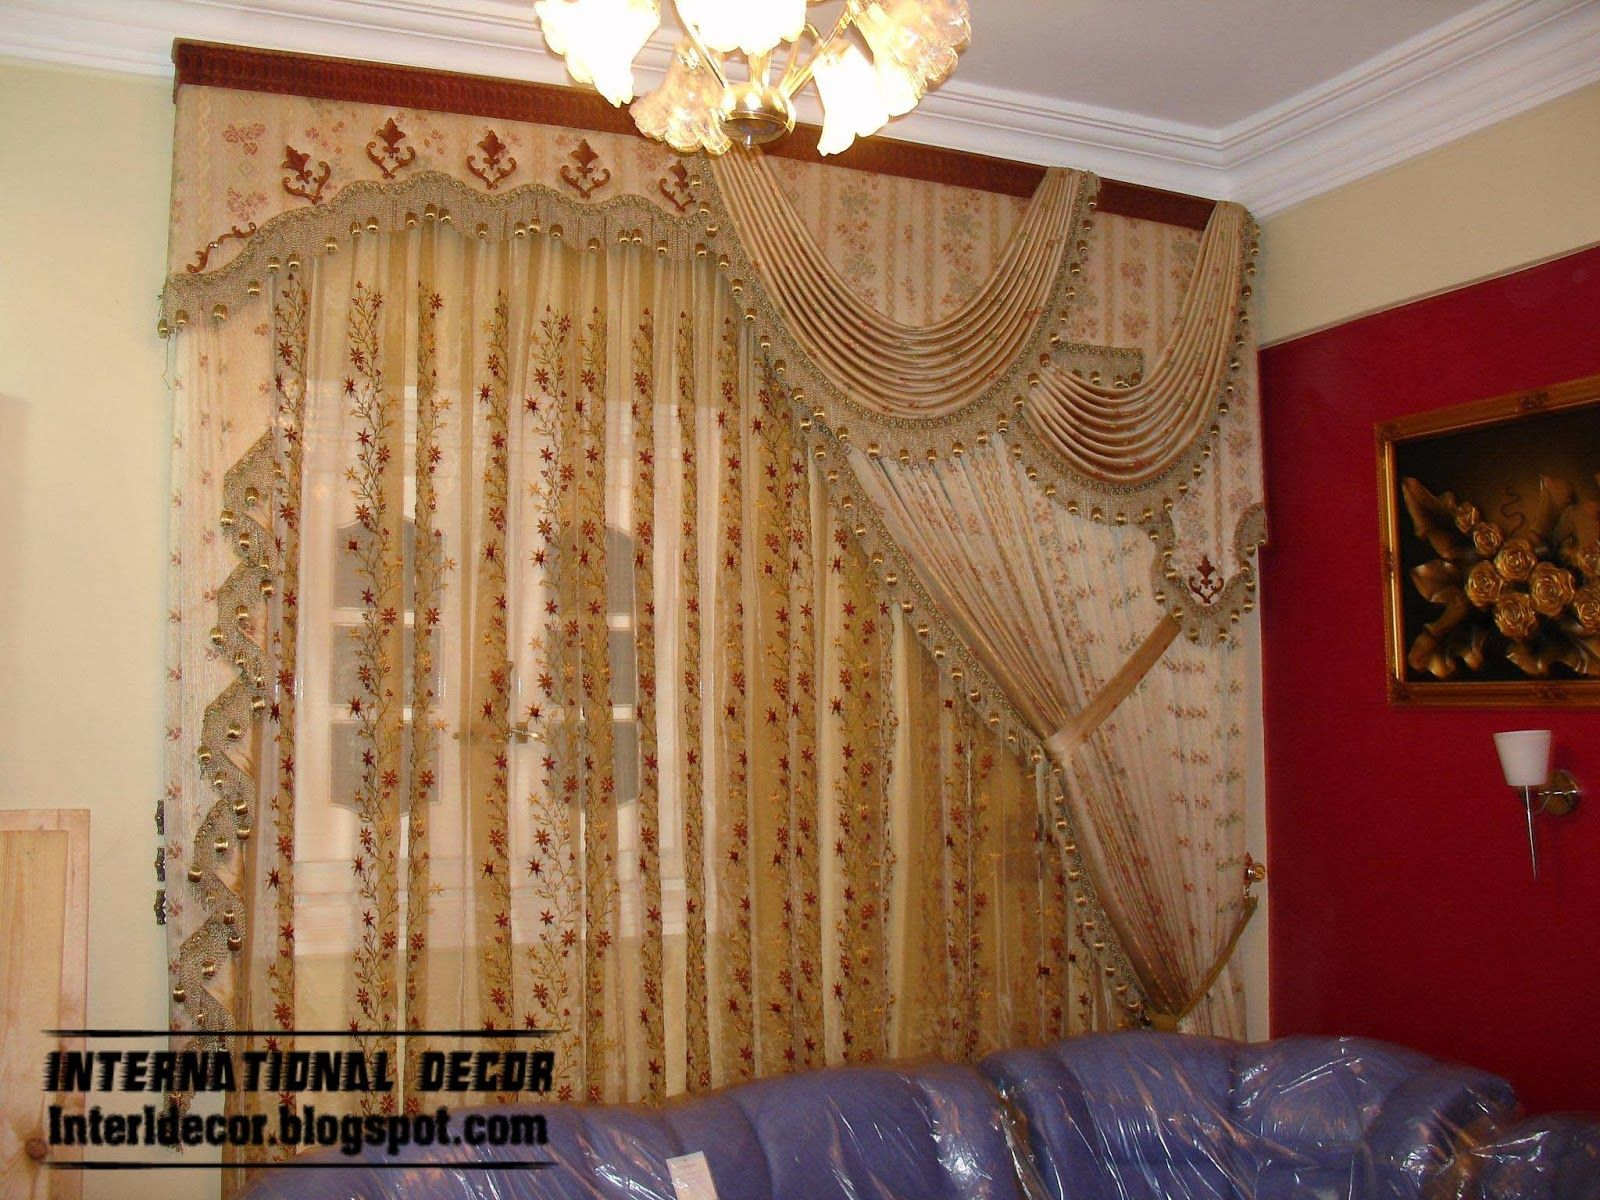 Living Room Drape Design Ideas Styles Of Curtains And Drapes Top Catalog Of  Luxury Drapes Curtain Designs For Living Roomluxury drapes   luxury drapes curtain design bright style for  . Modern Living Room Drapery Ideas. Home Design Ideas